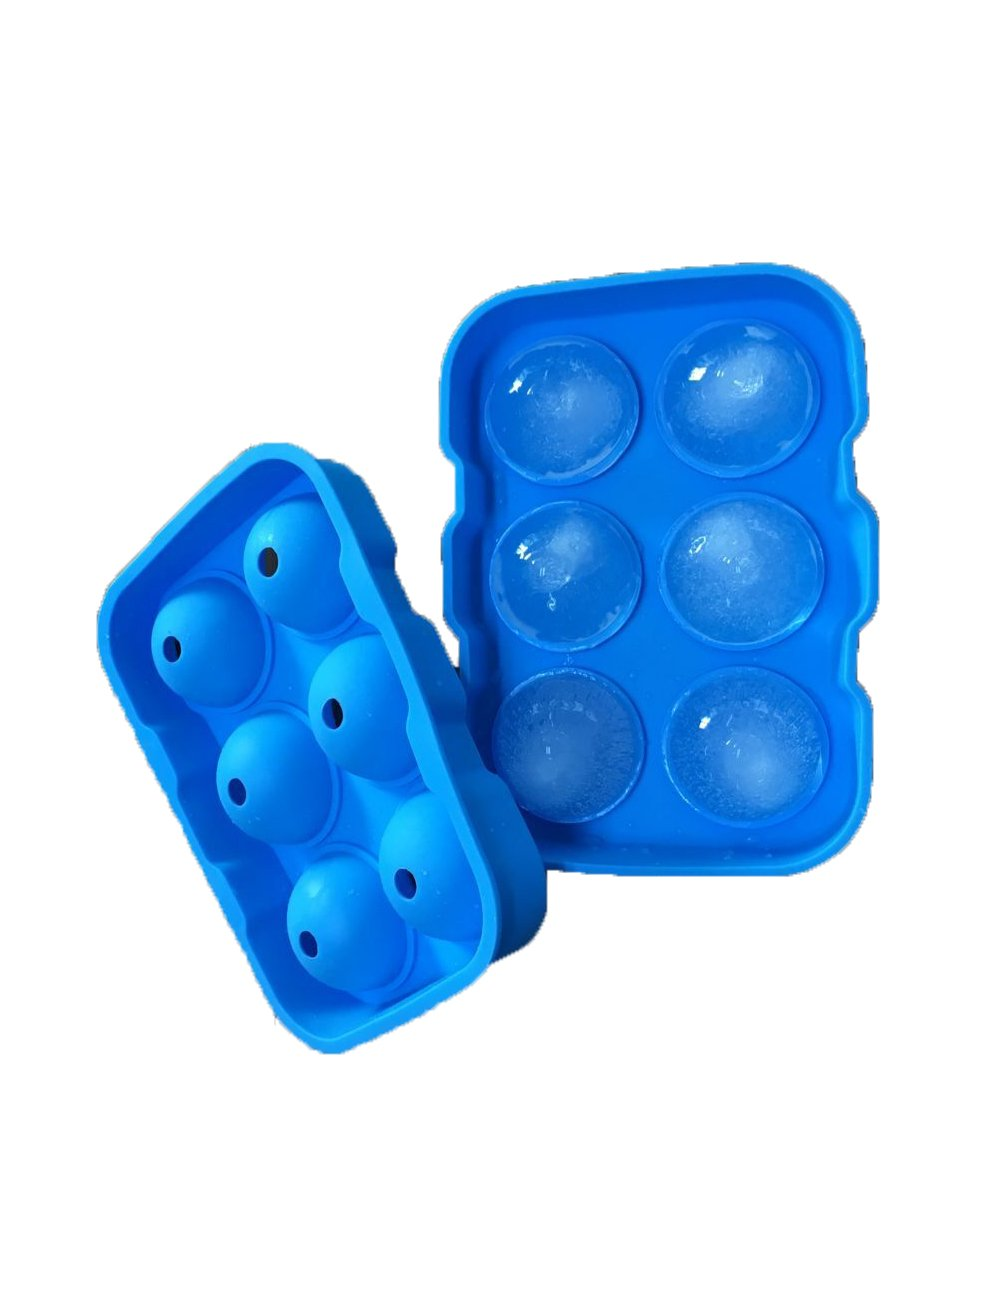 Silicone Sphere Whiskey Ice Ball Maker with Lids /& Large Square Ice Cube Molds for Cocktails /& Bourbon 6 Cube Ice Cube Trays KOSMOO Reusable /& BPA Free